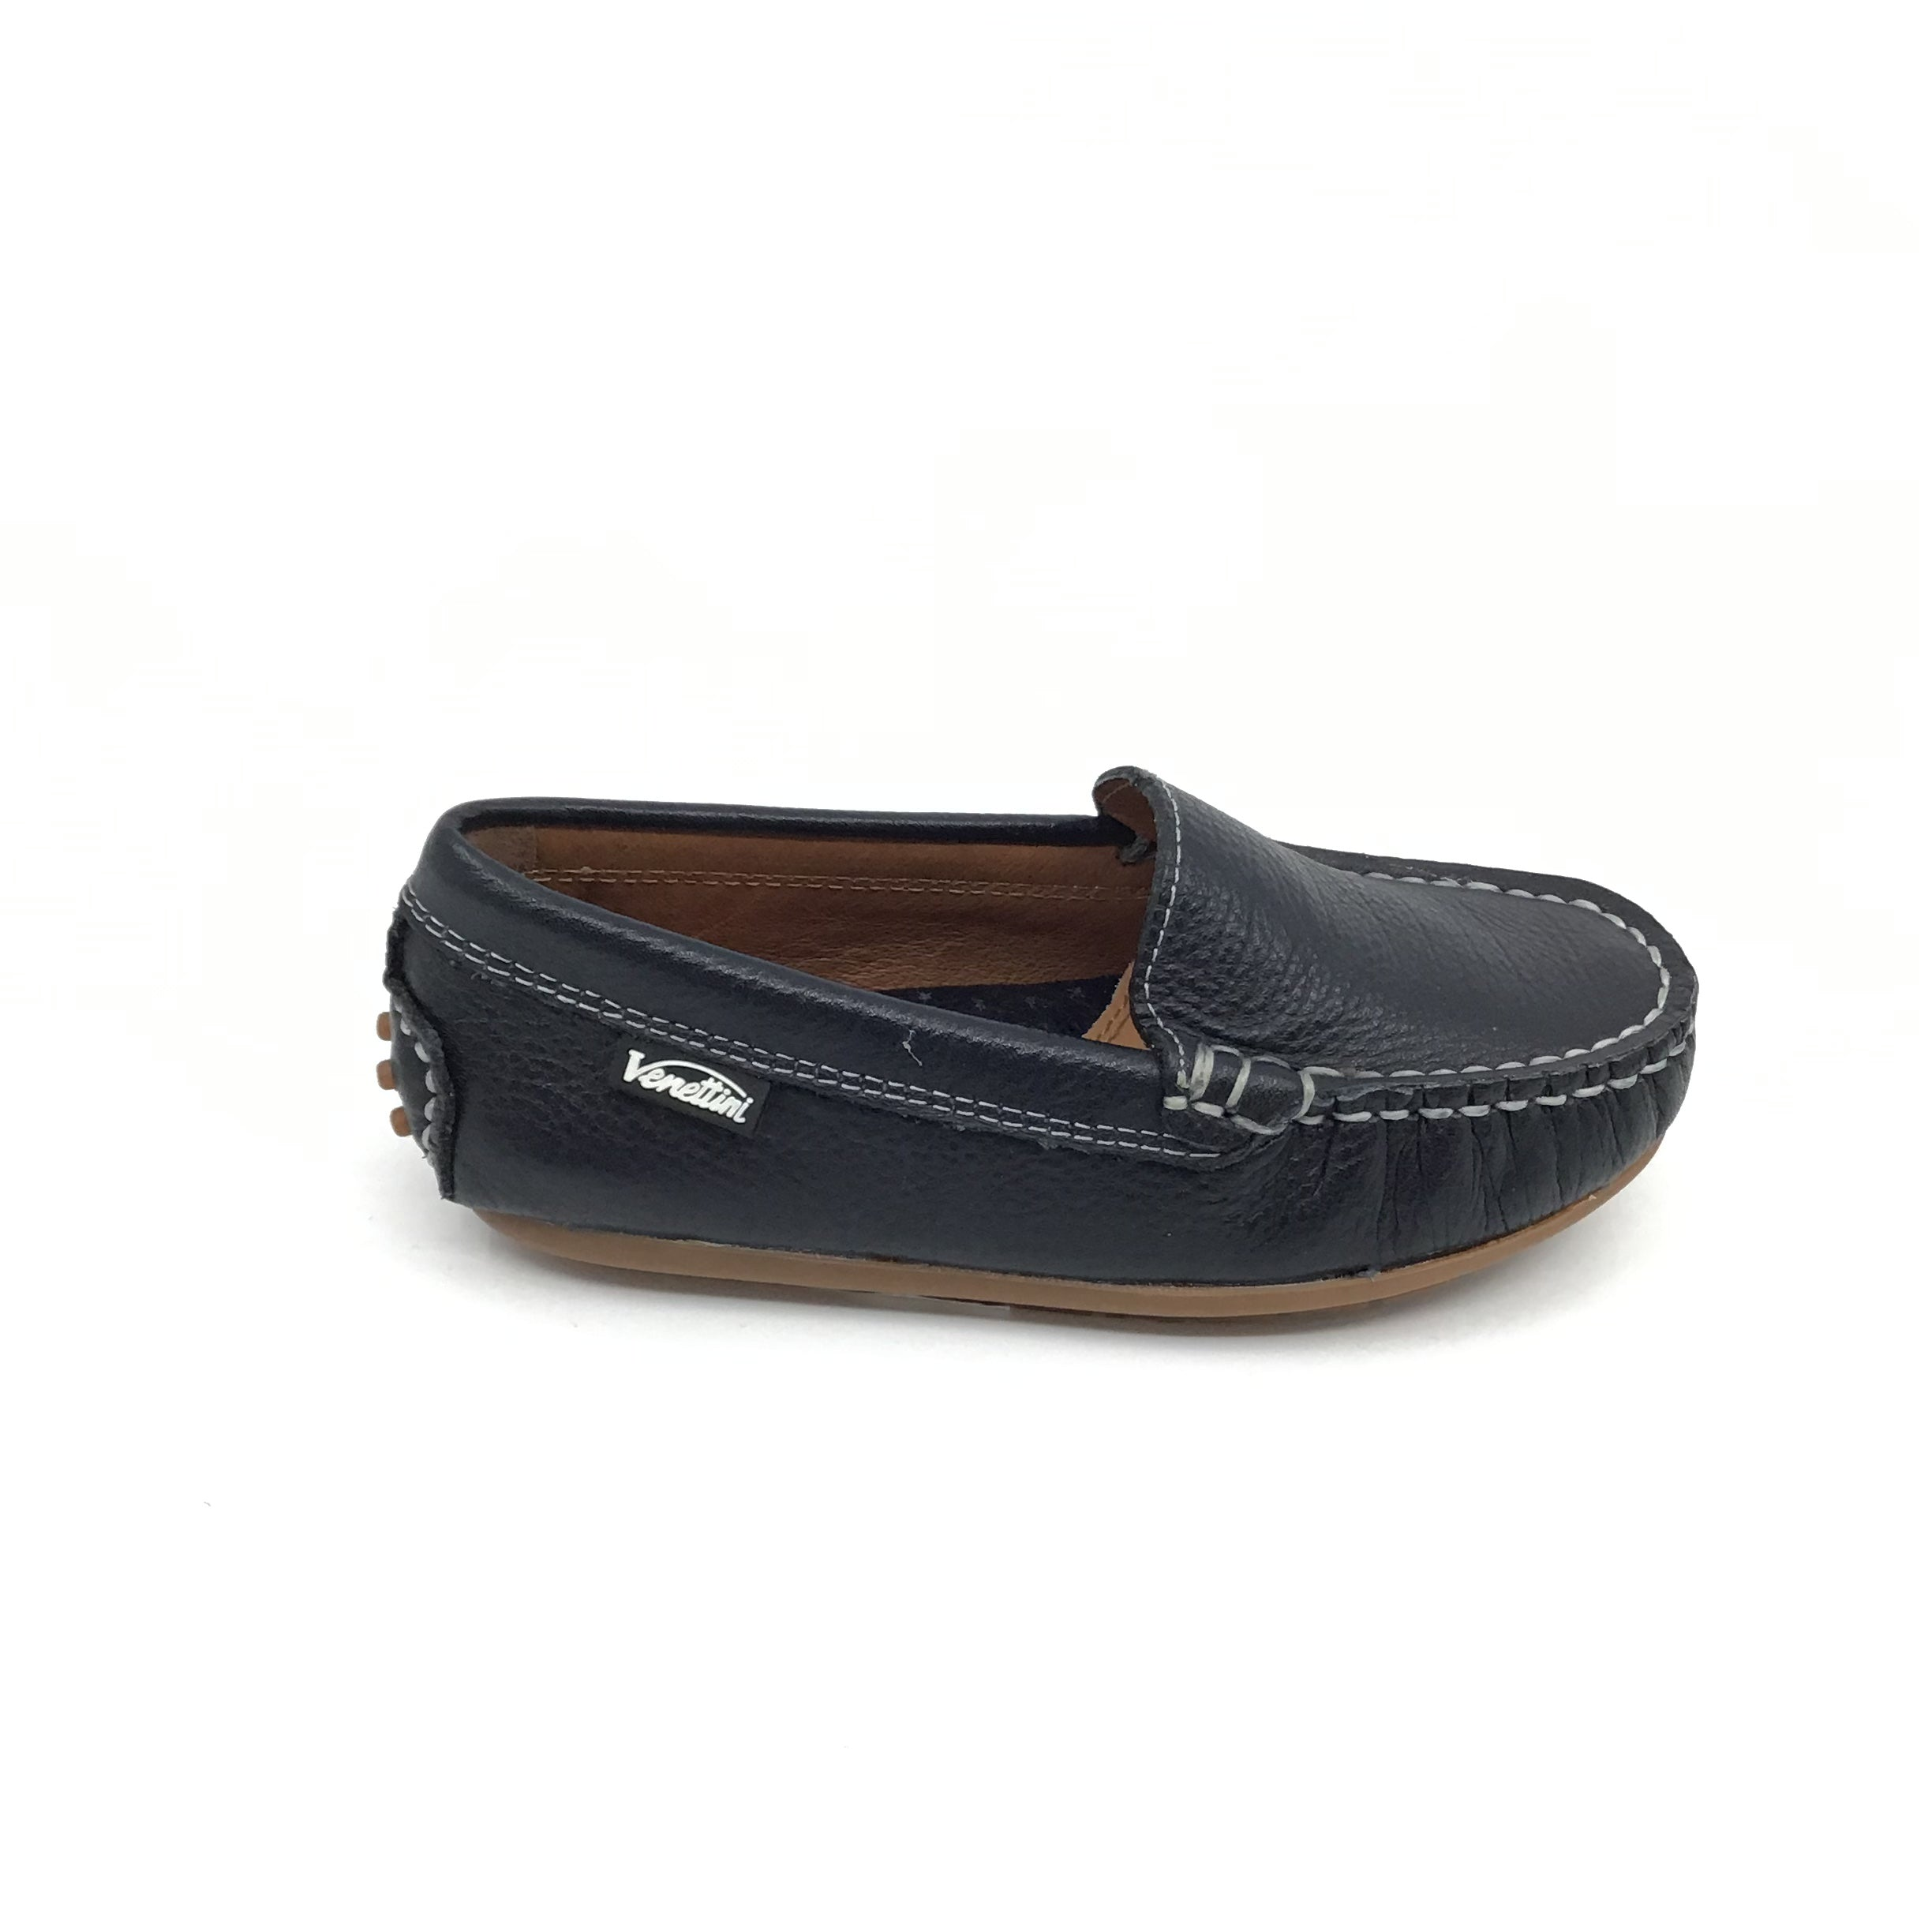 Venettini Dark Navy Stitched Loafer